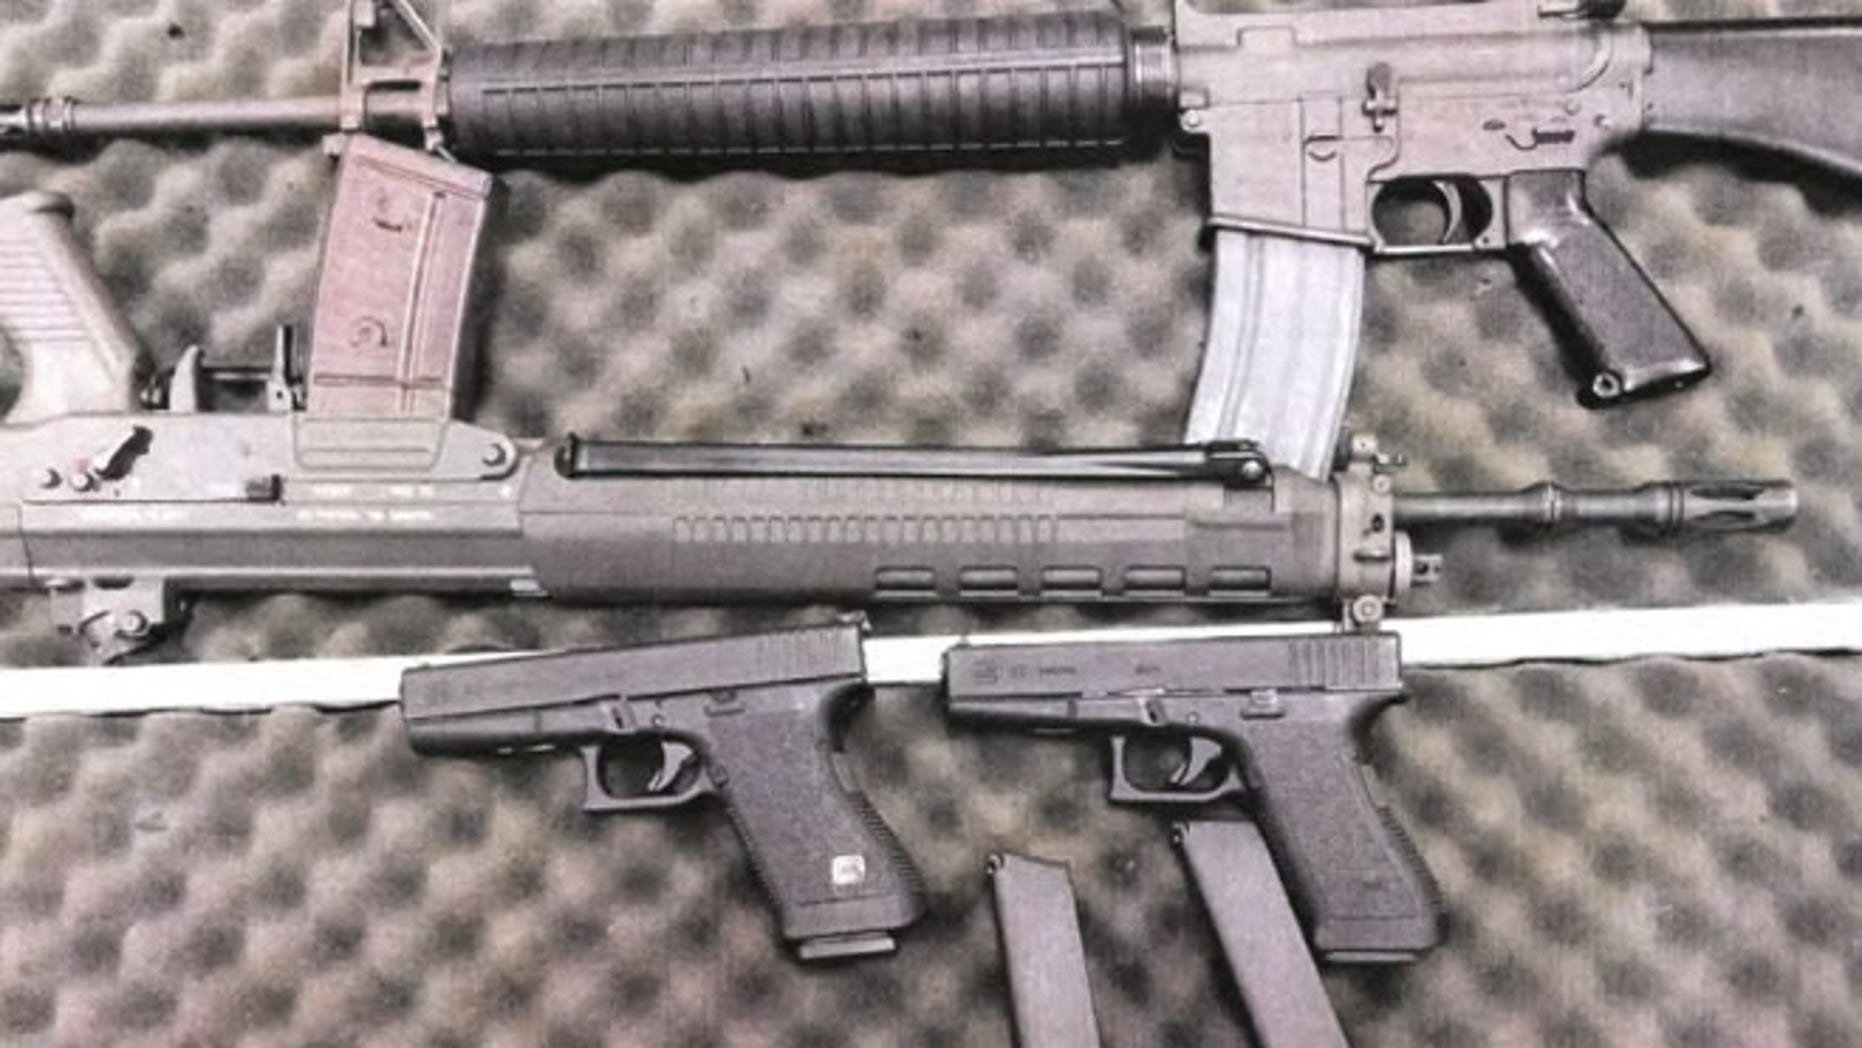 Authorities say 23-year-old Alexander Ciccolo illegally purchased four guns and planned a terror attack.